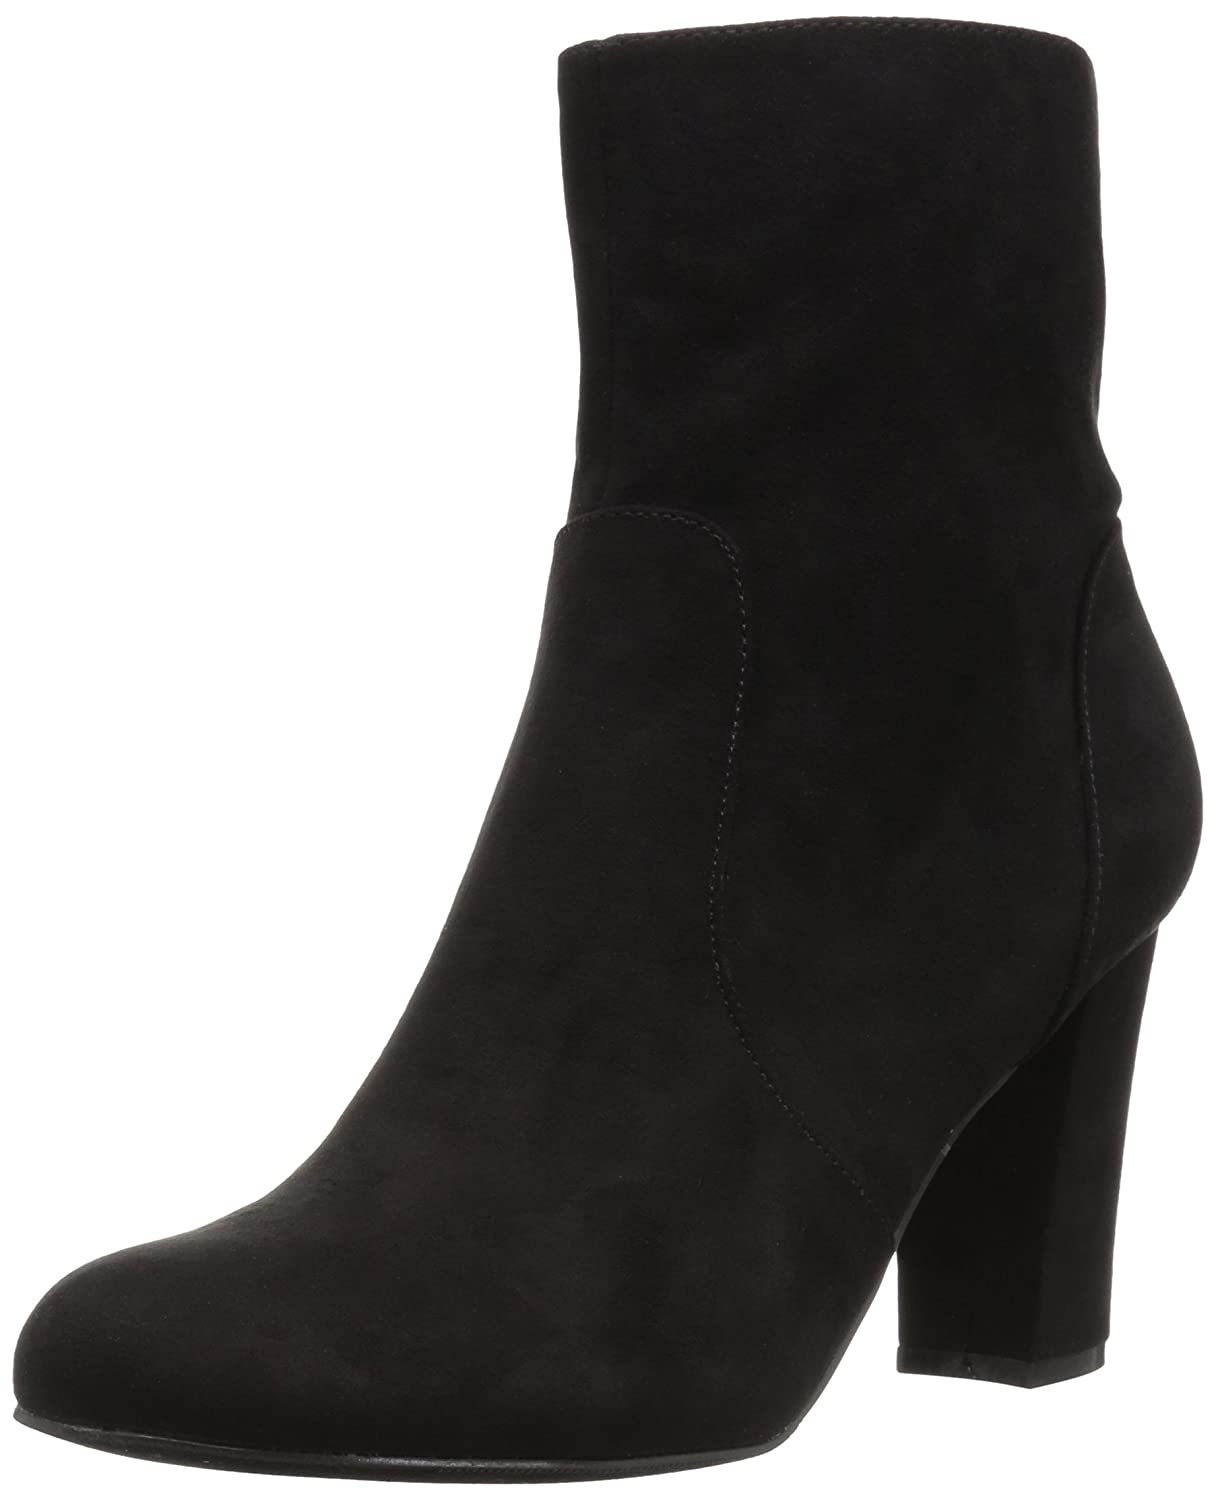 Madden Girl Women's Farrley Ankle Boot B005AVD6LY 9 B(M) US|Black Fabric